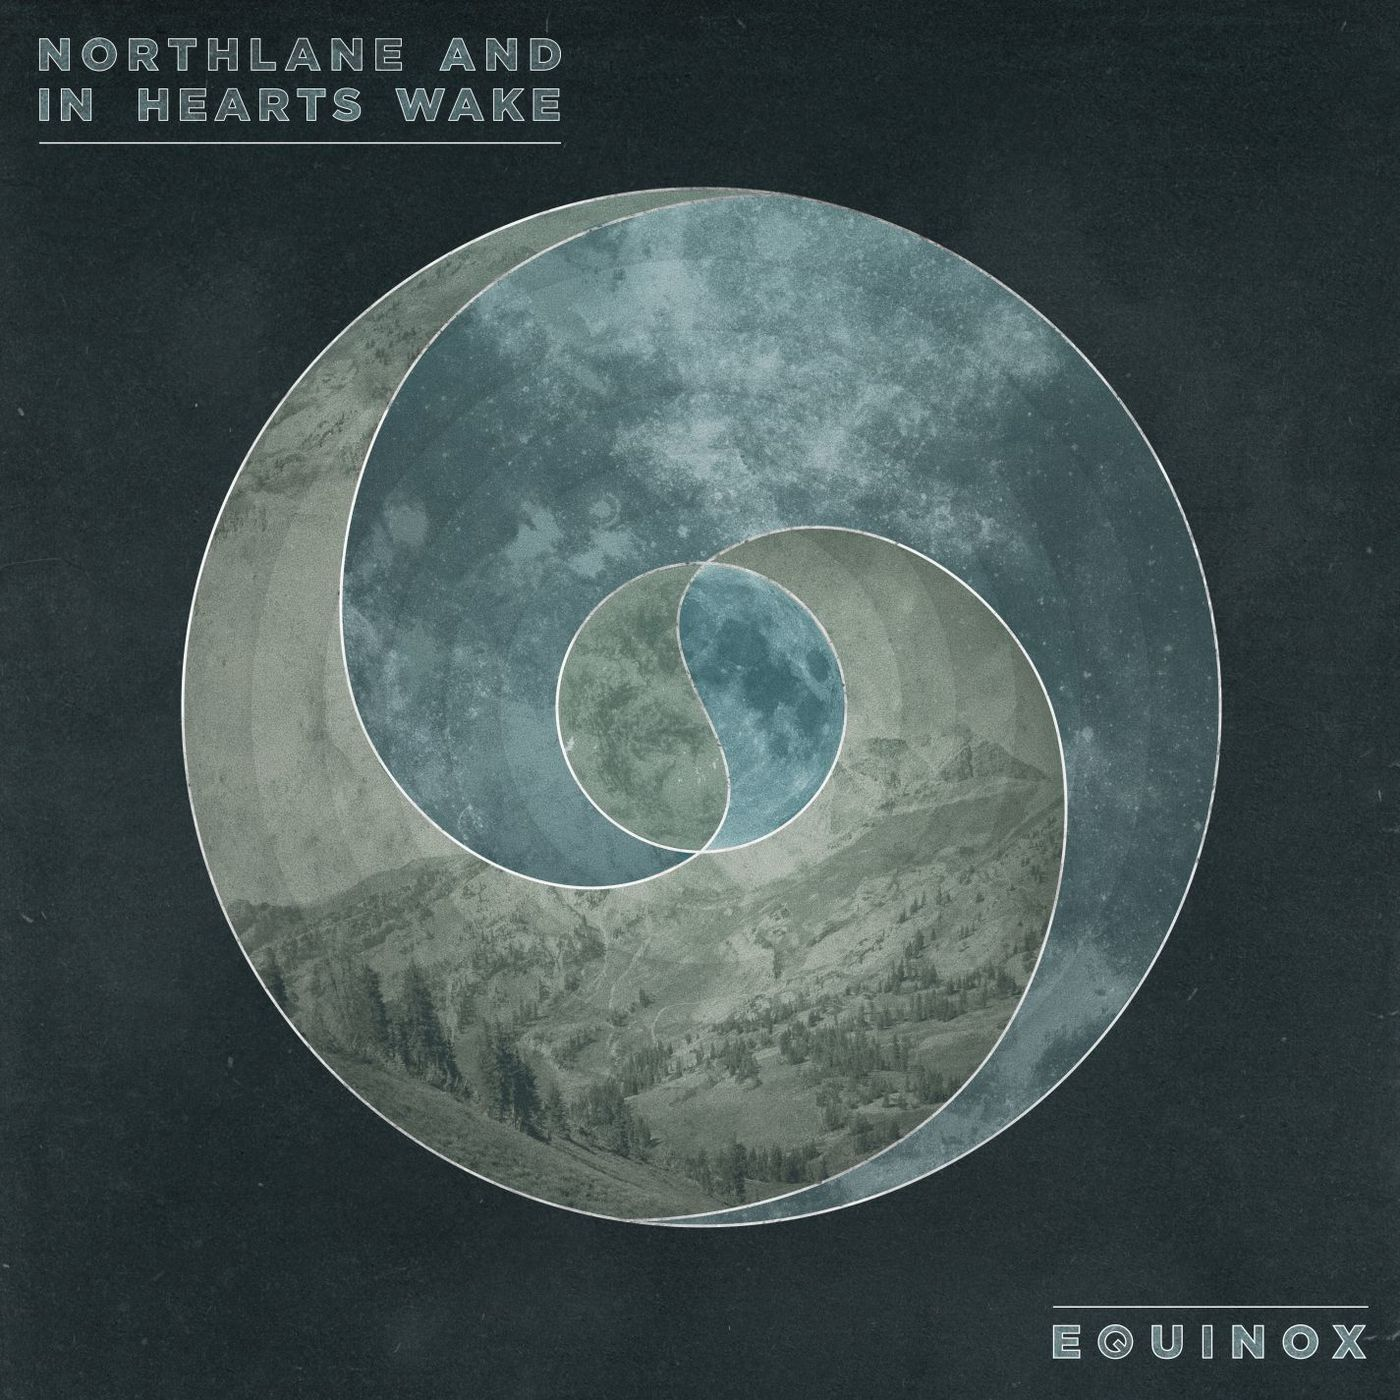 Northlane & In Hearts Wake - Equinox [Split Record] (2016)